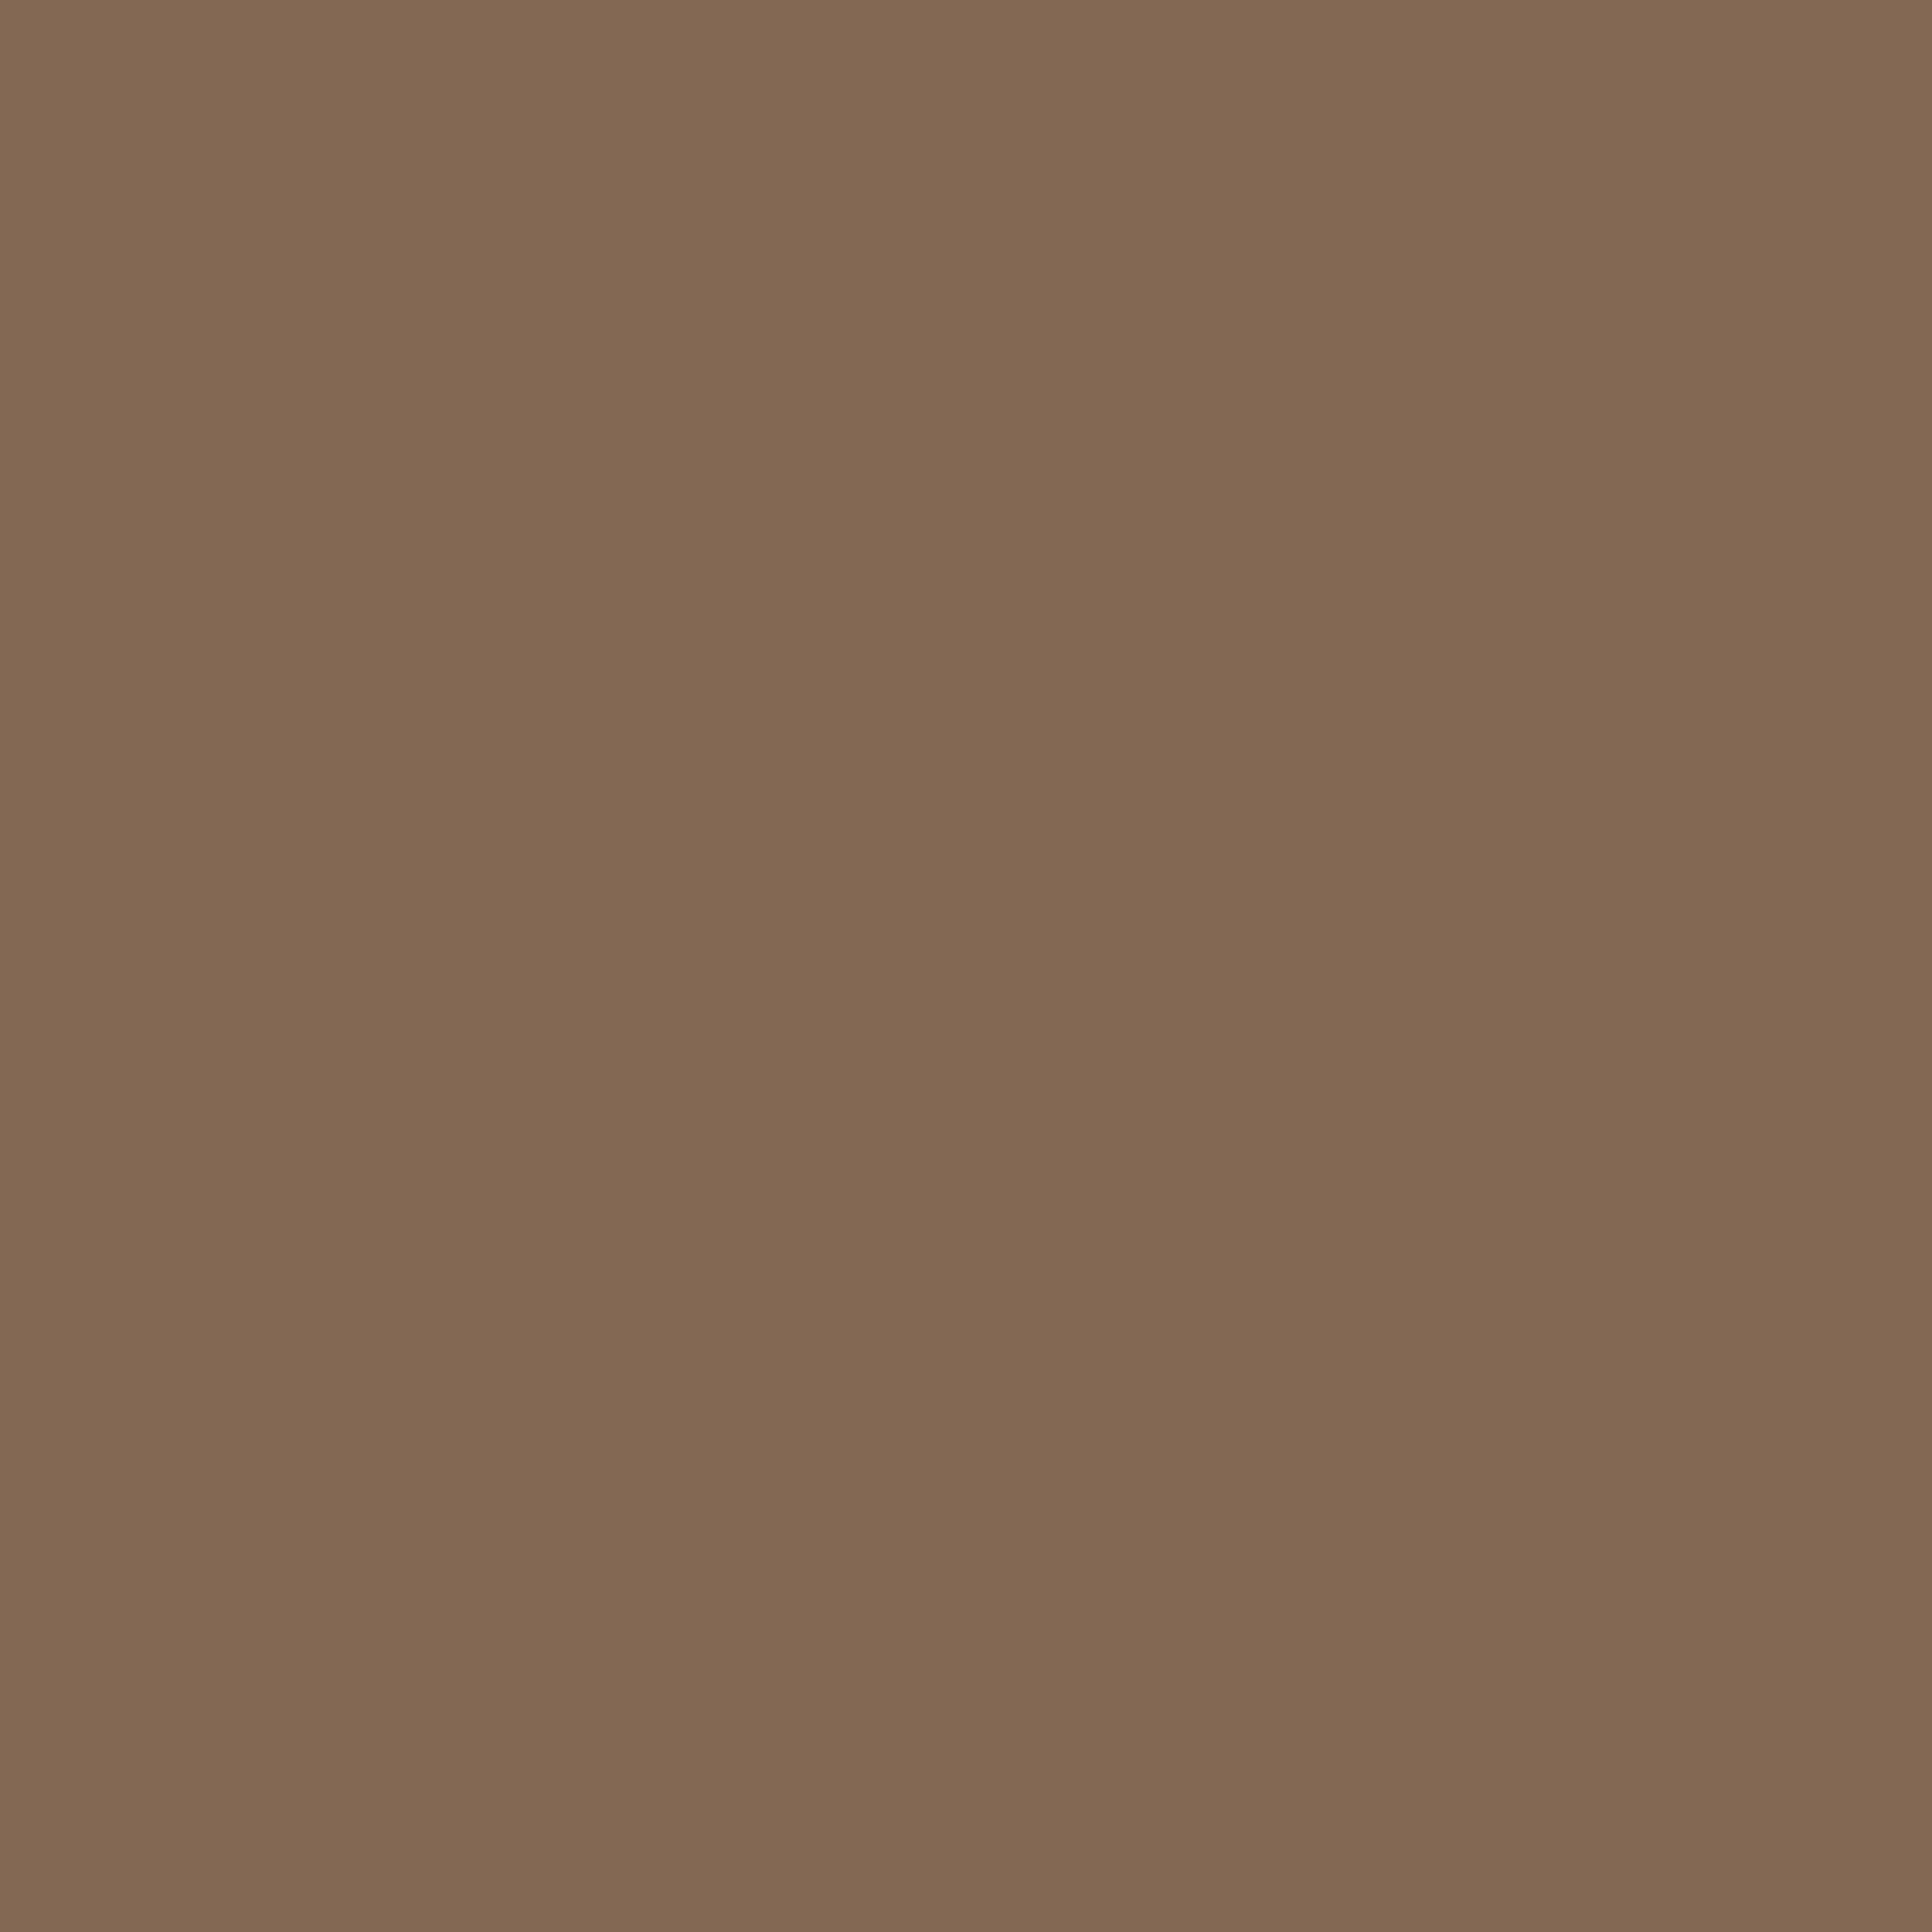 2732x2732 Pastel Brown Solid Color Background 2732x2732